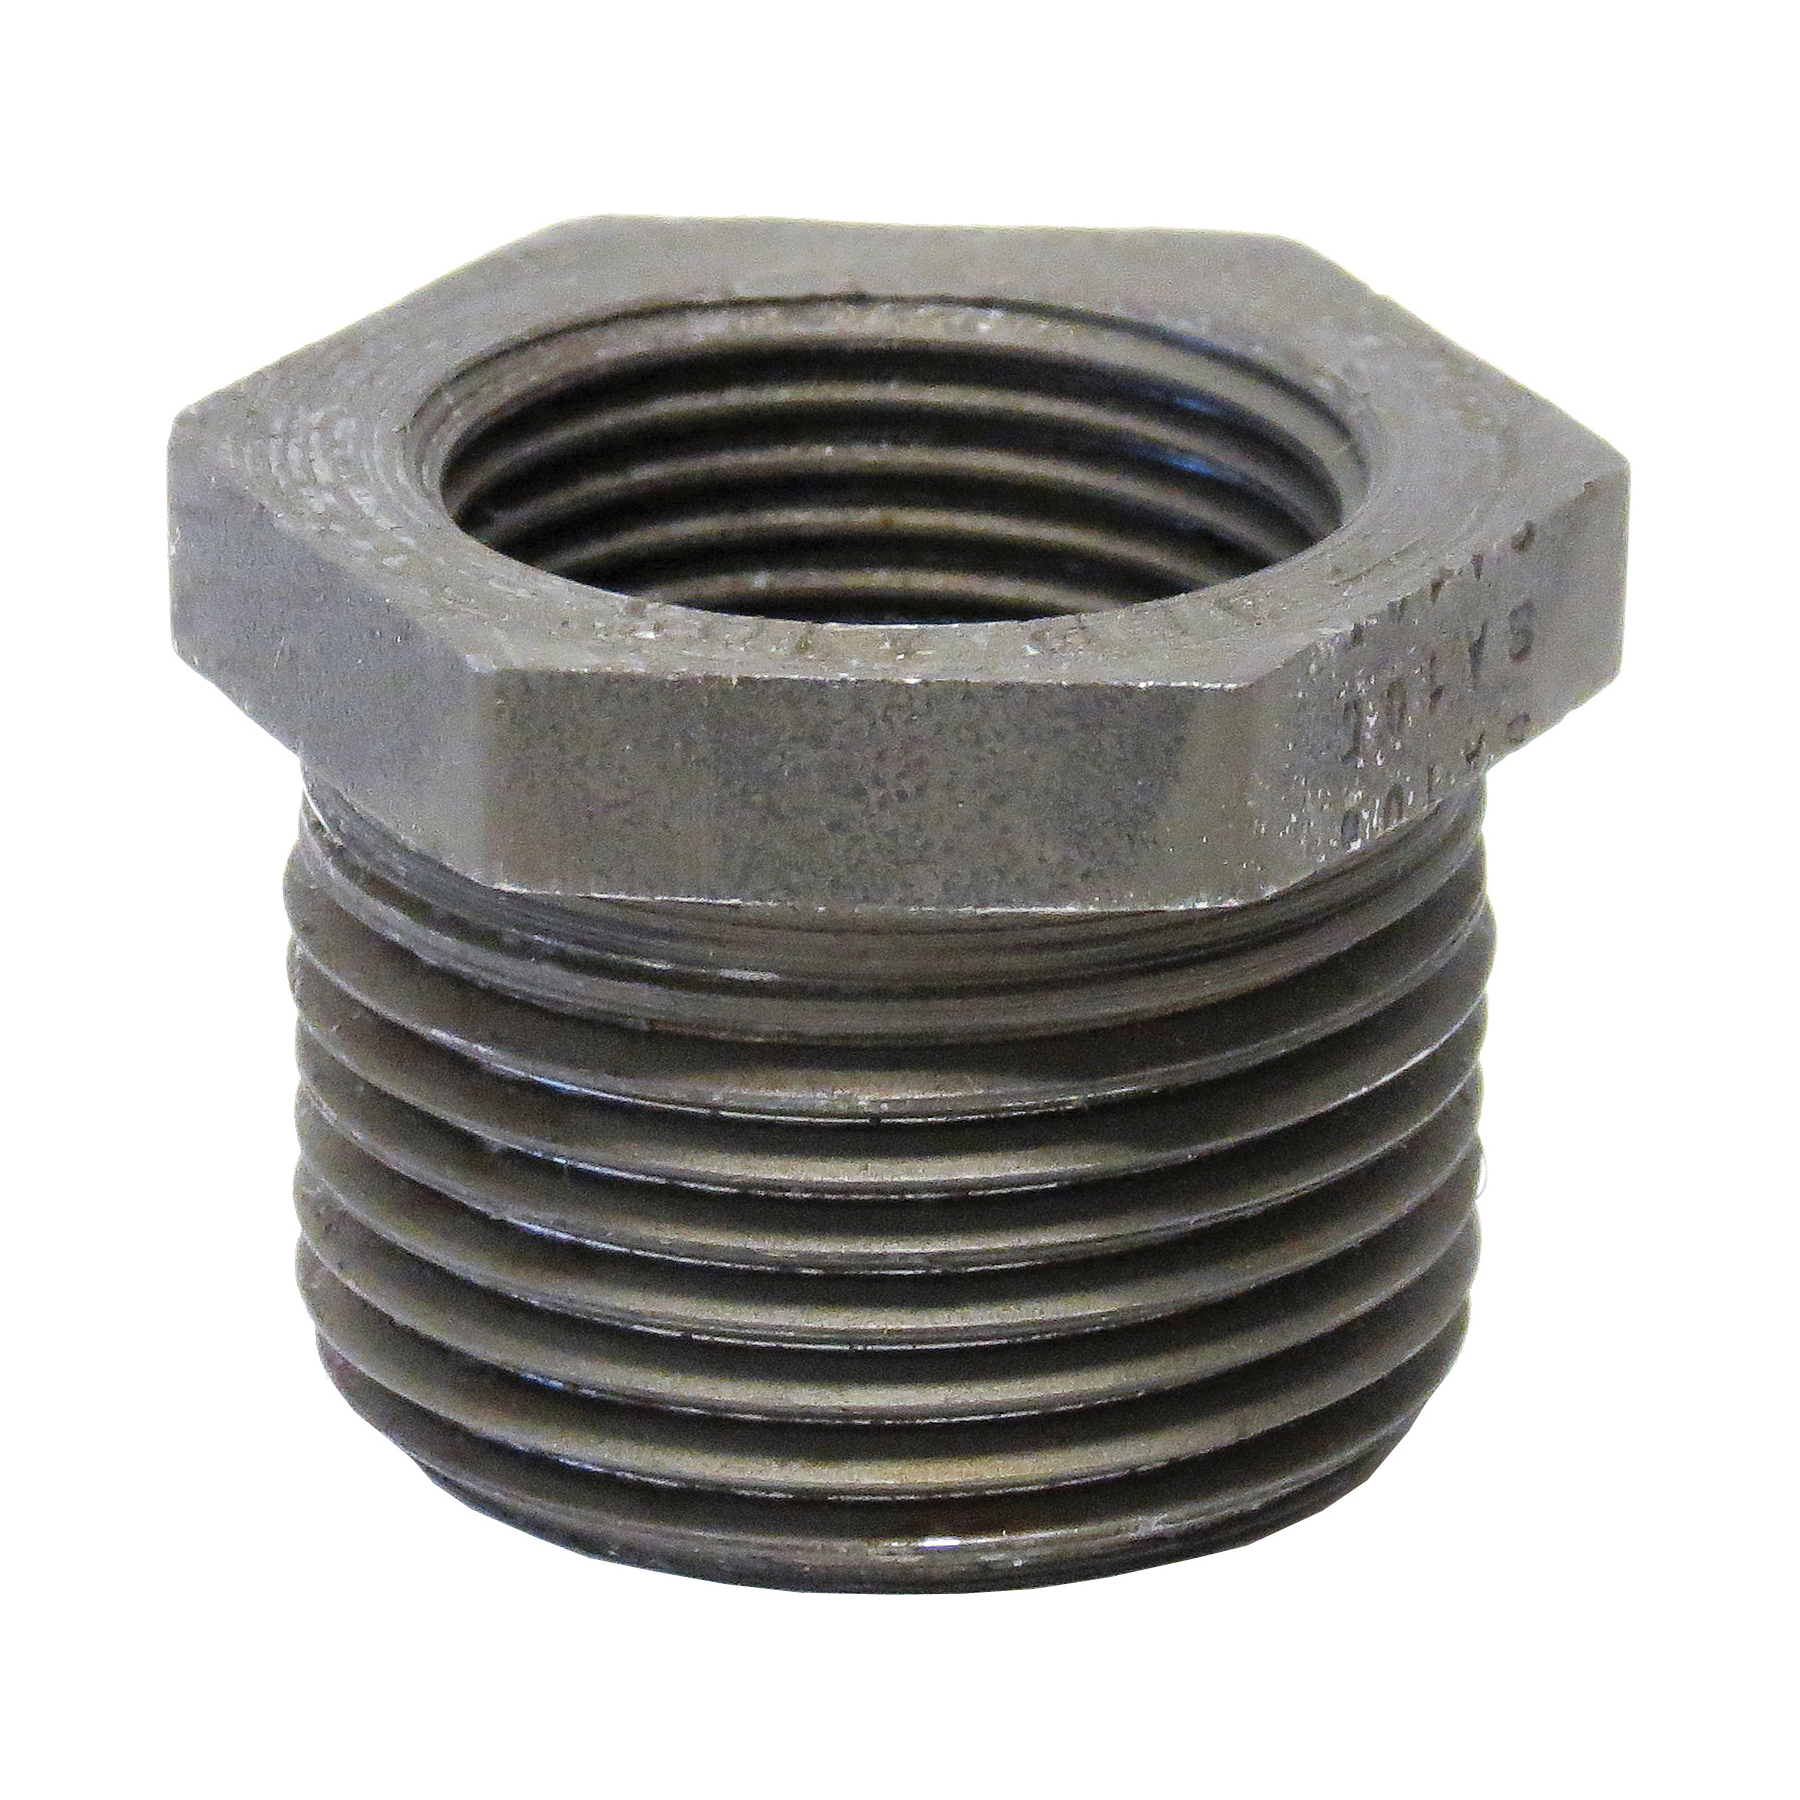 Anvil® 0361330608 FIG 2139 High Pressure Hex Head Bushing, 3/4 x 1/8 in, Steel, Domestic